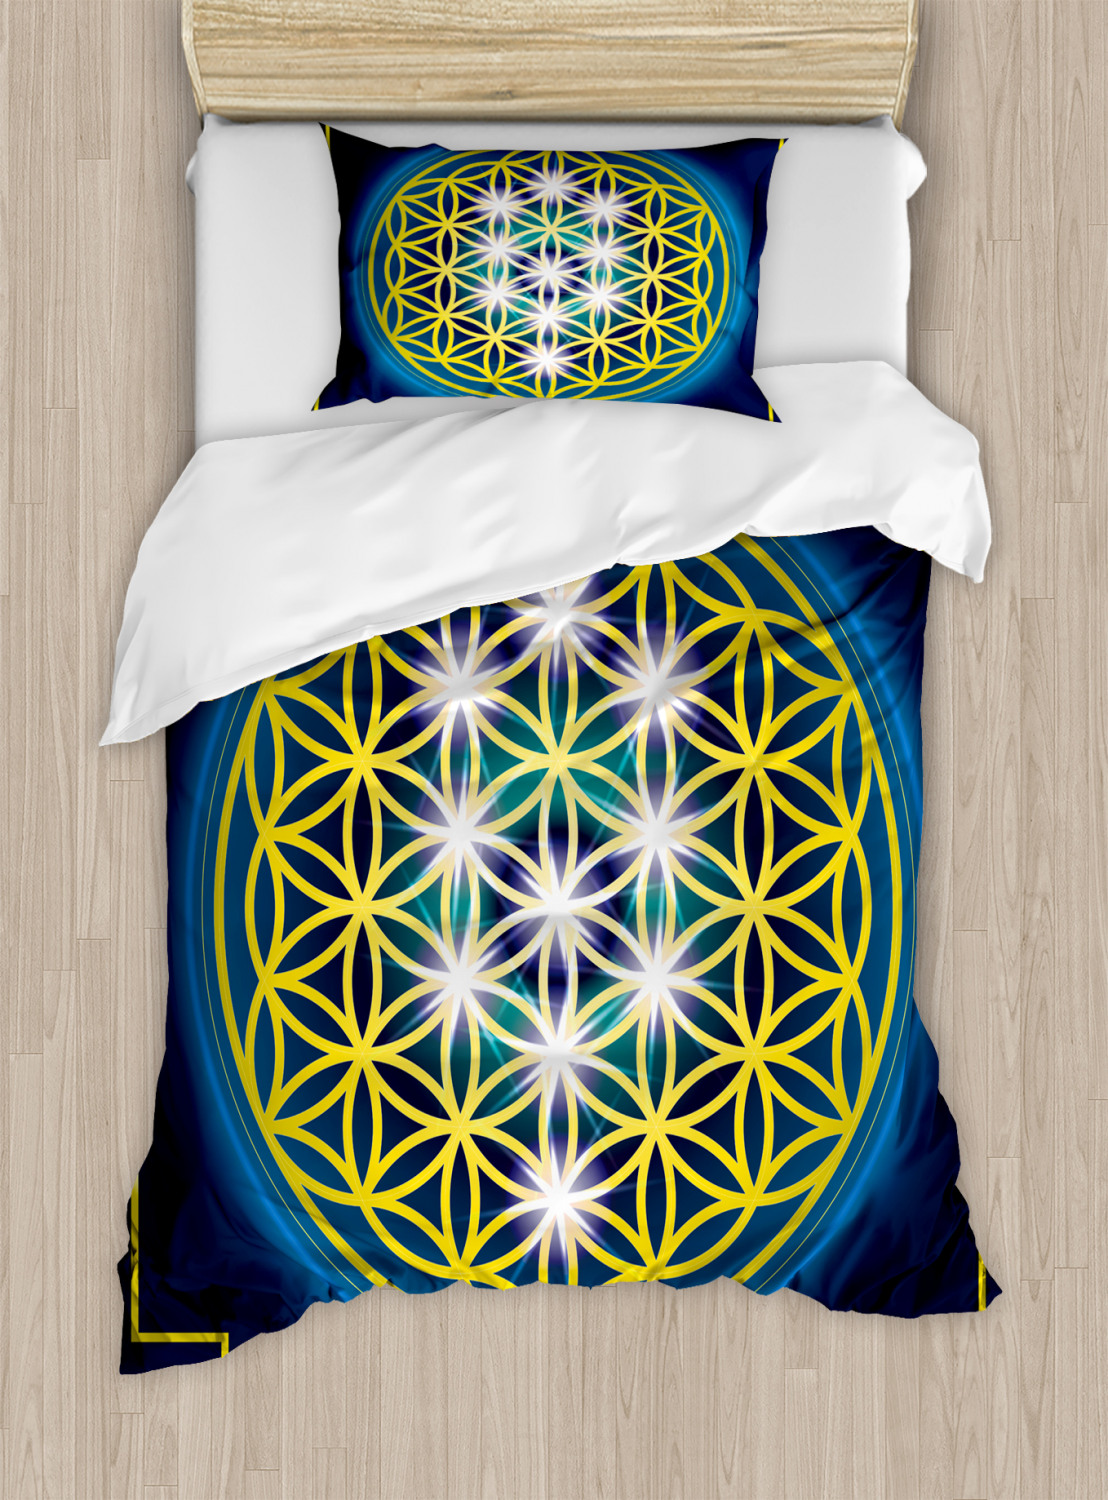 Flower-of-Life-Duvet-Cover-Set-Twin-Queen-King-Sizes-with-Pillow-Shams thumbnail 22